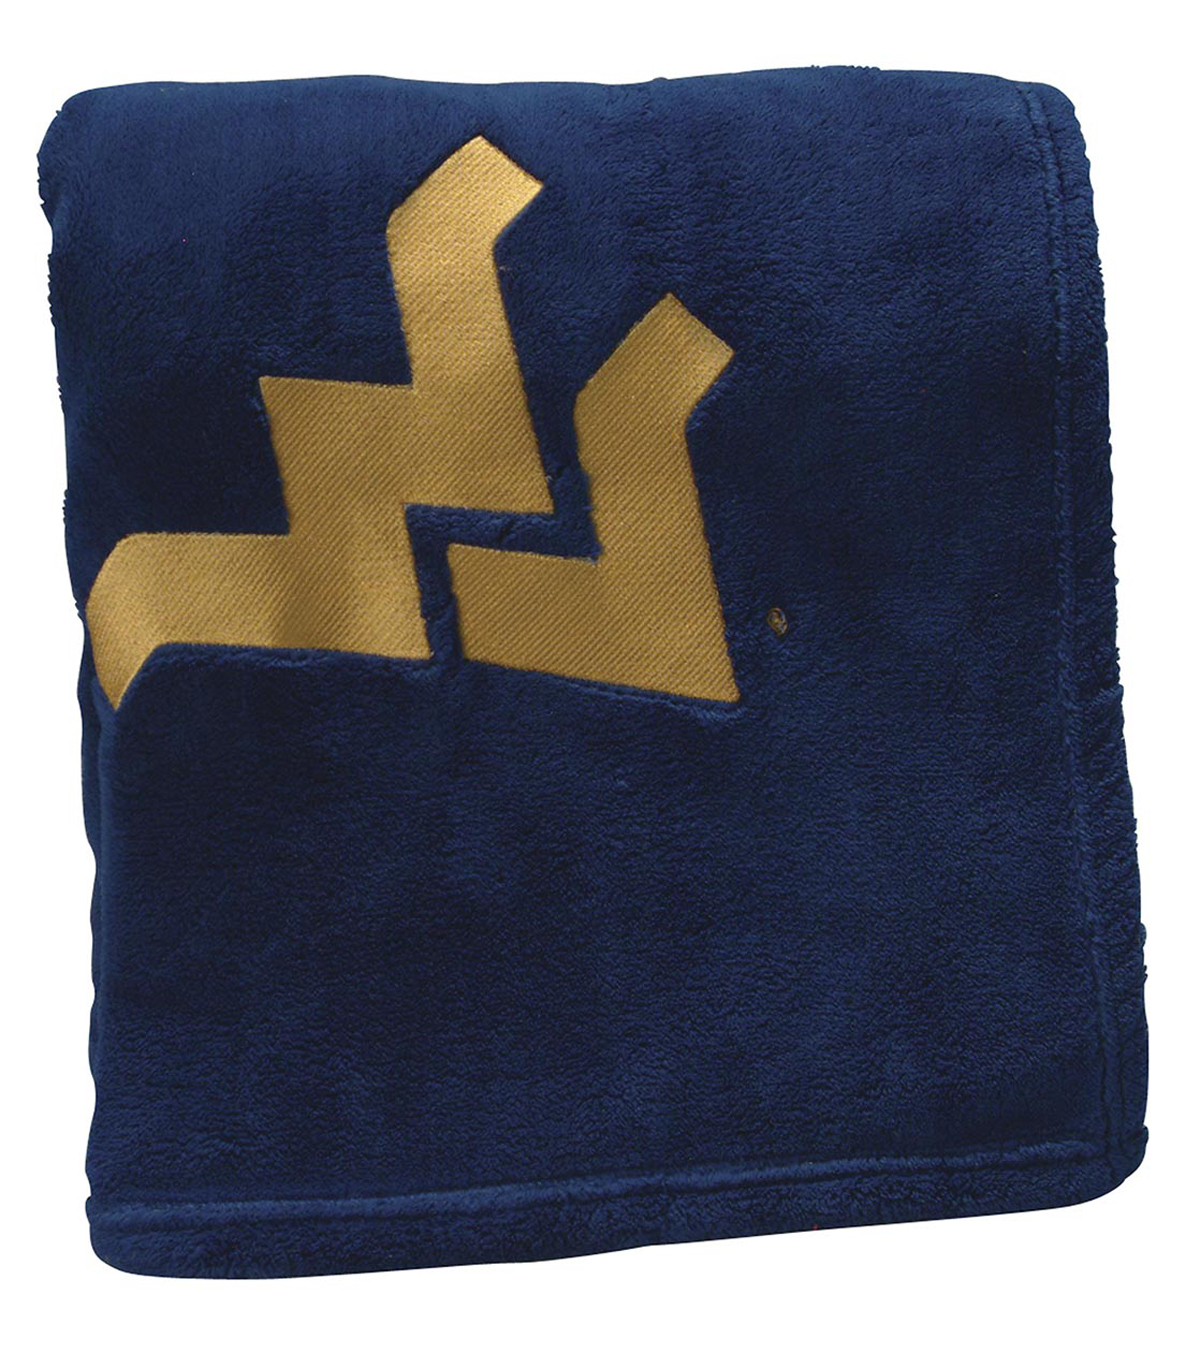 West Virginia University Mountaineers Throw